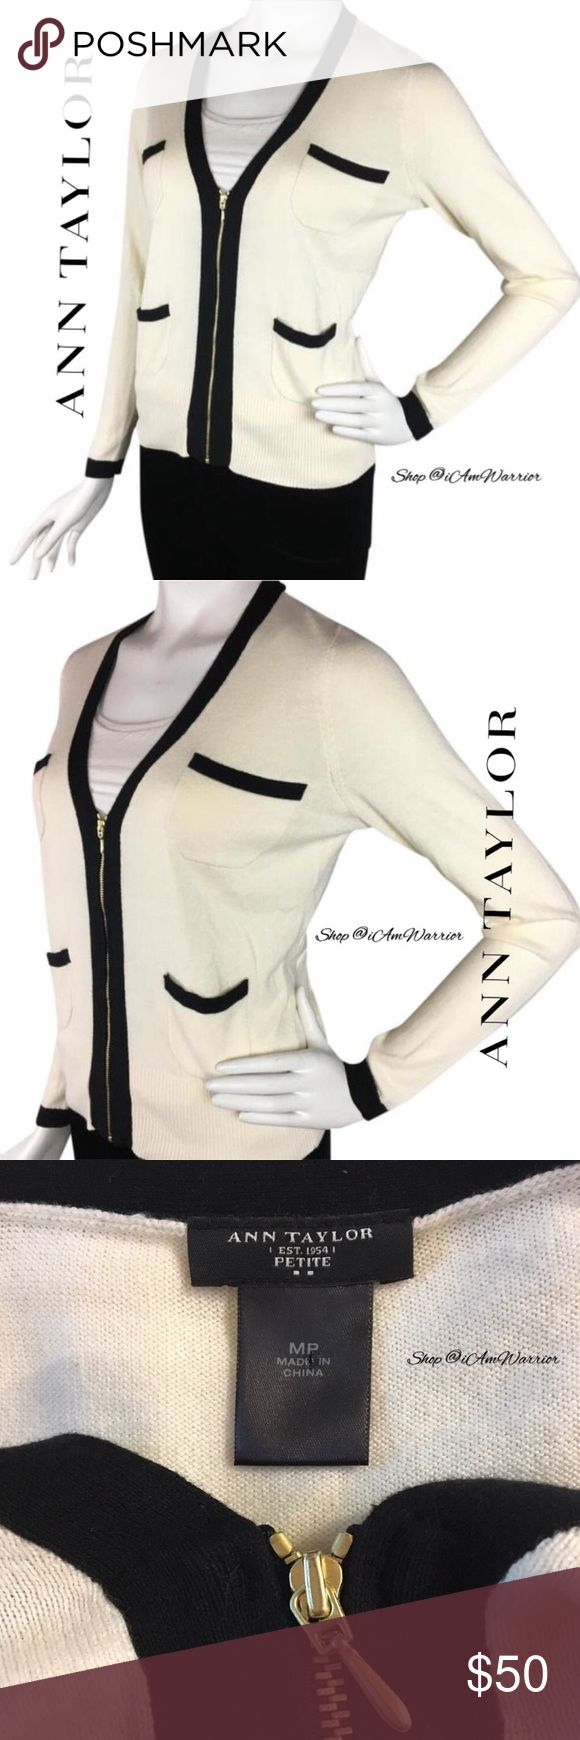 Ann Taylor cream zippered cardigan with black trim Cute little Ann Taylor cream zip up cotton blend cardigan with black trim. Size medium petite but can also work for a regular small. Perfect for Spring! Good condition, smoke free home. Please read recently updated bio regarding closet policies prior to any inquiries. Ann Taylor Sweaters Cardigans